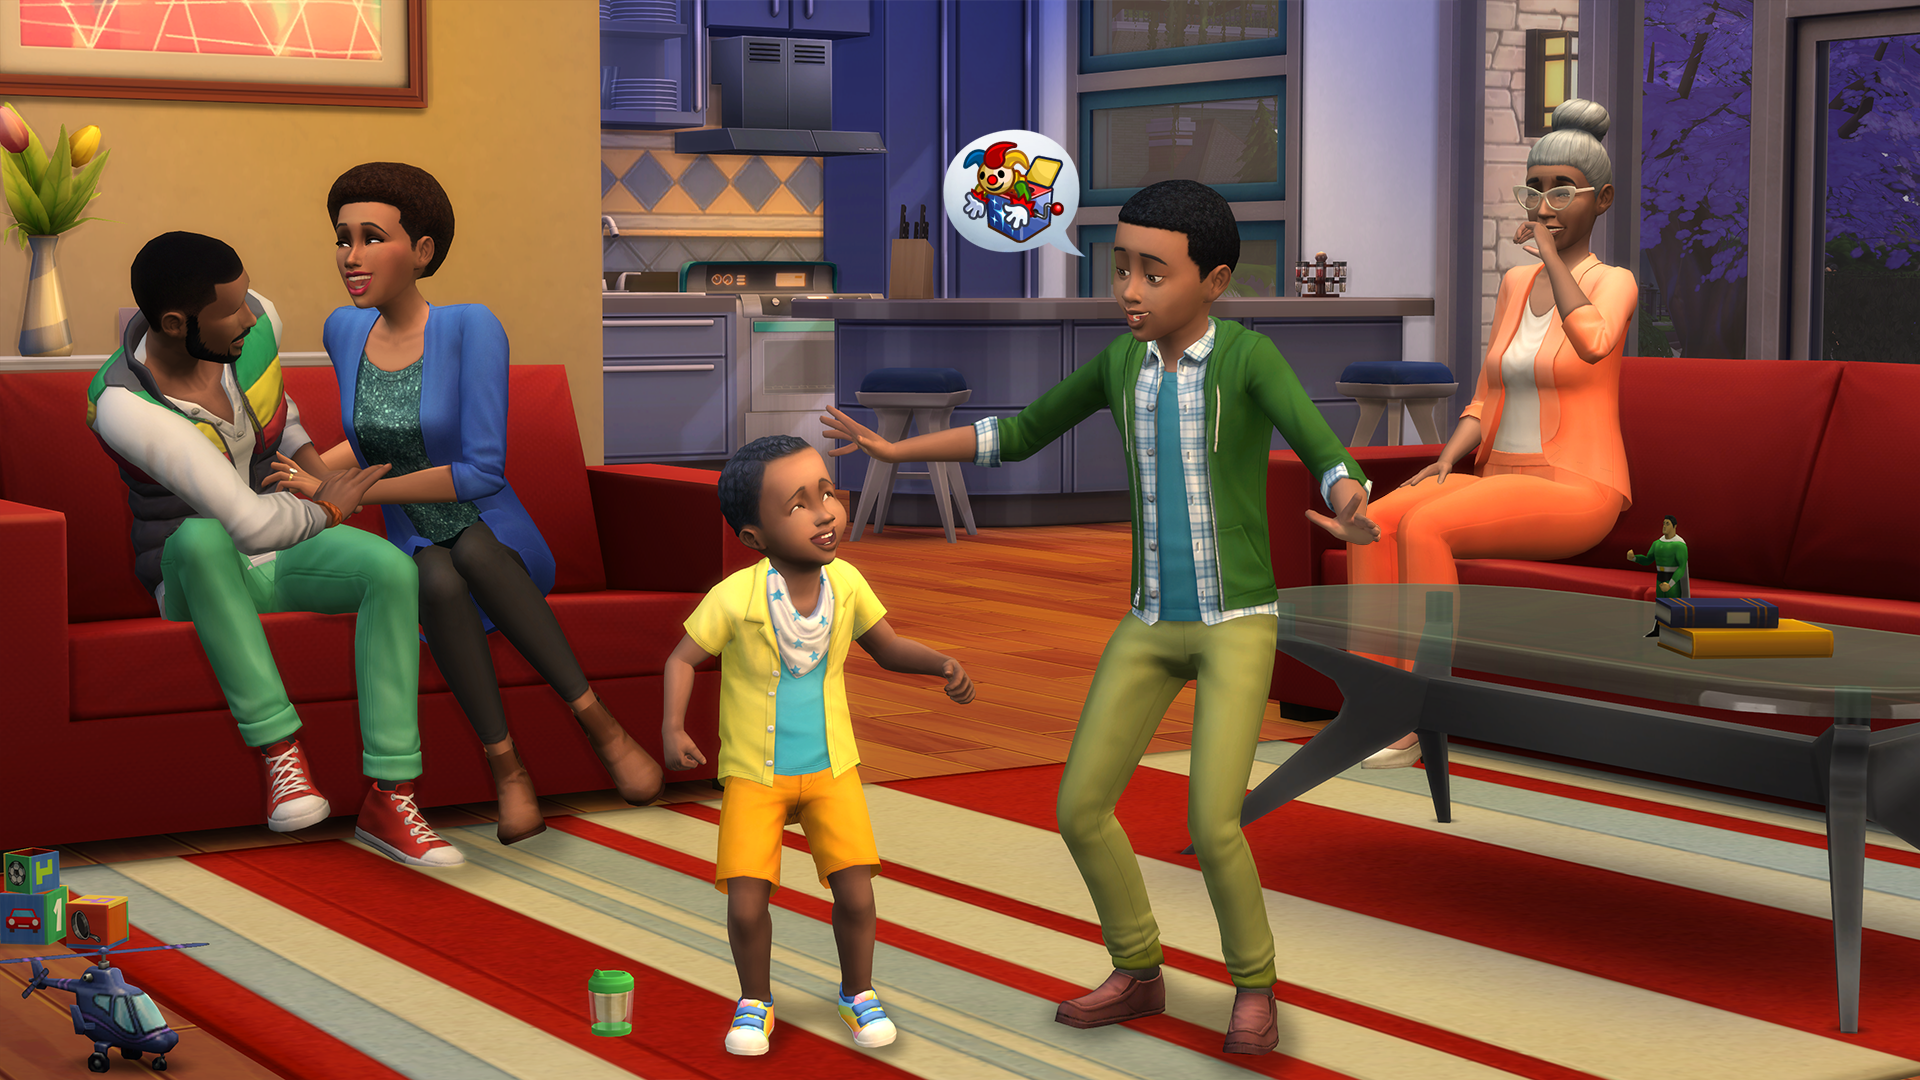 A screenshot showing a family scene in the living room in The Sims 4.